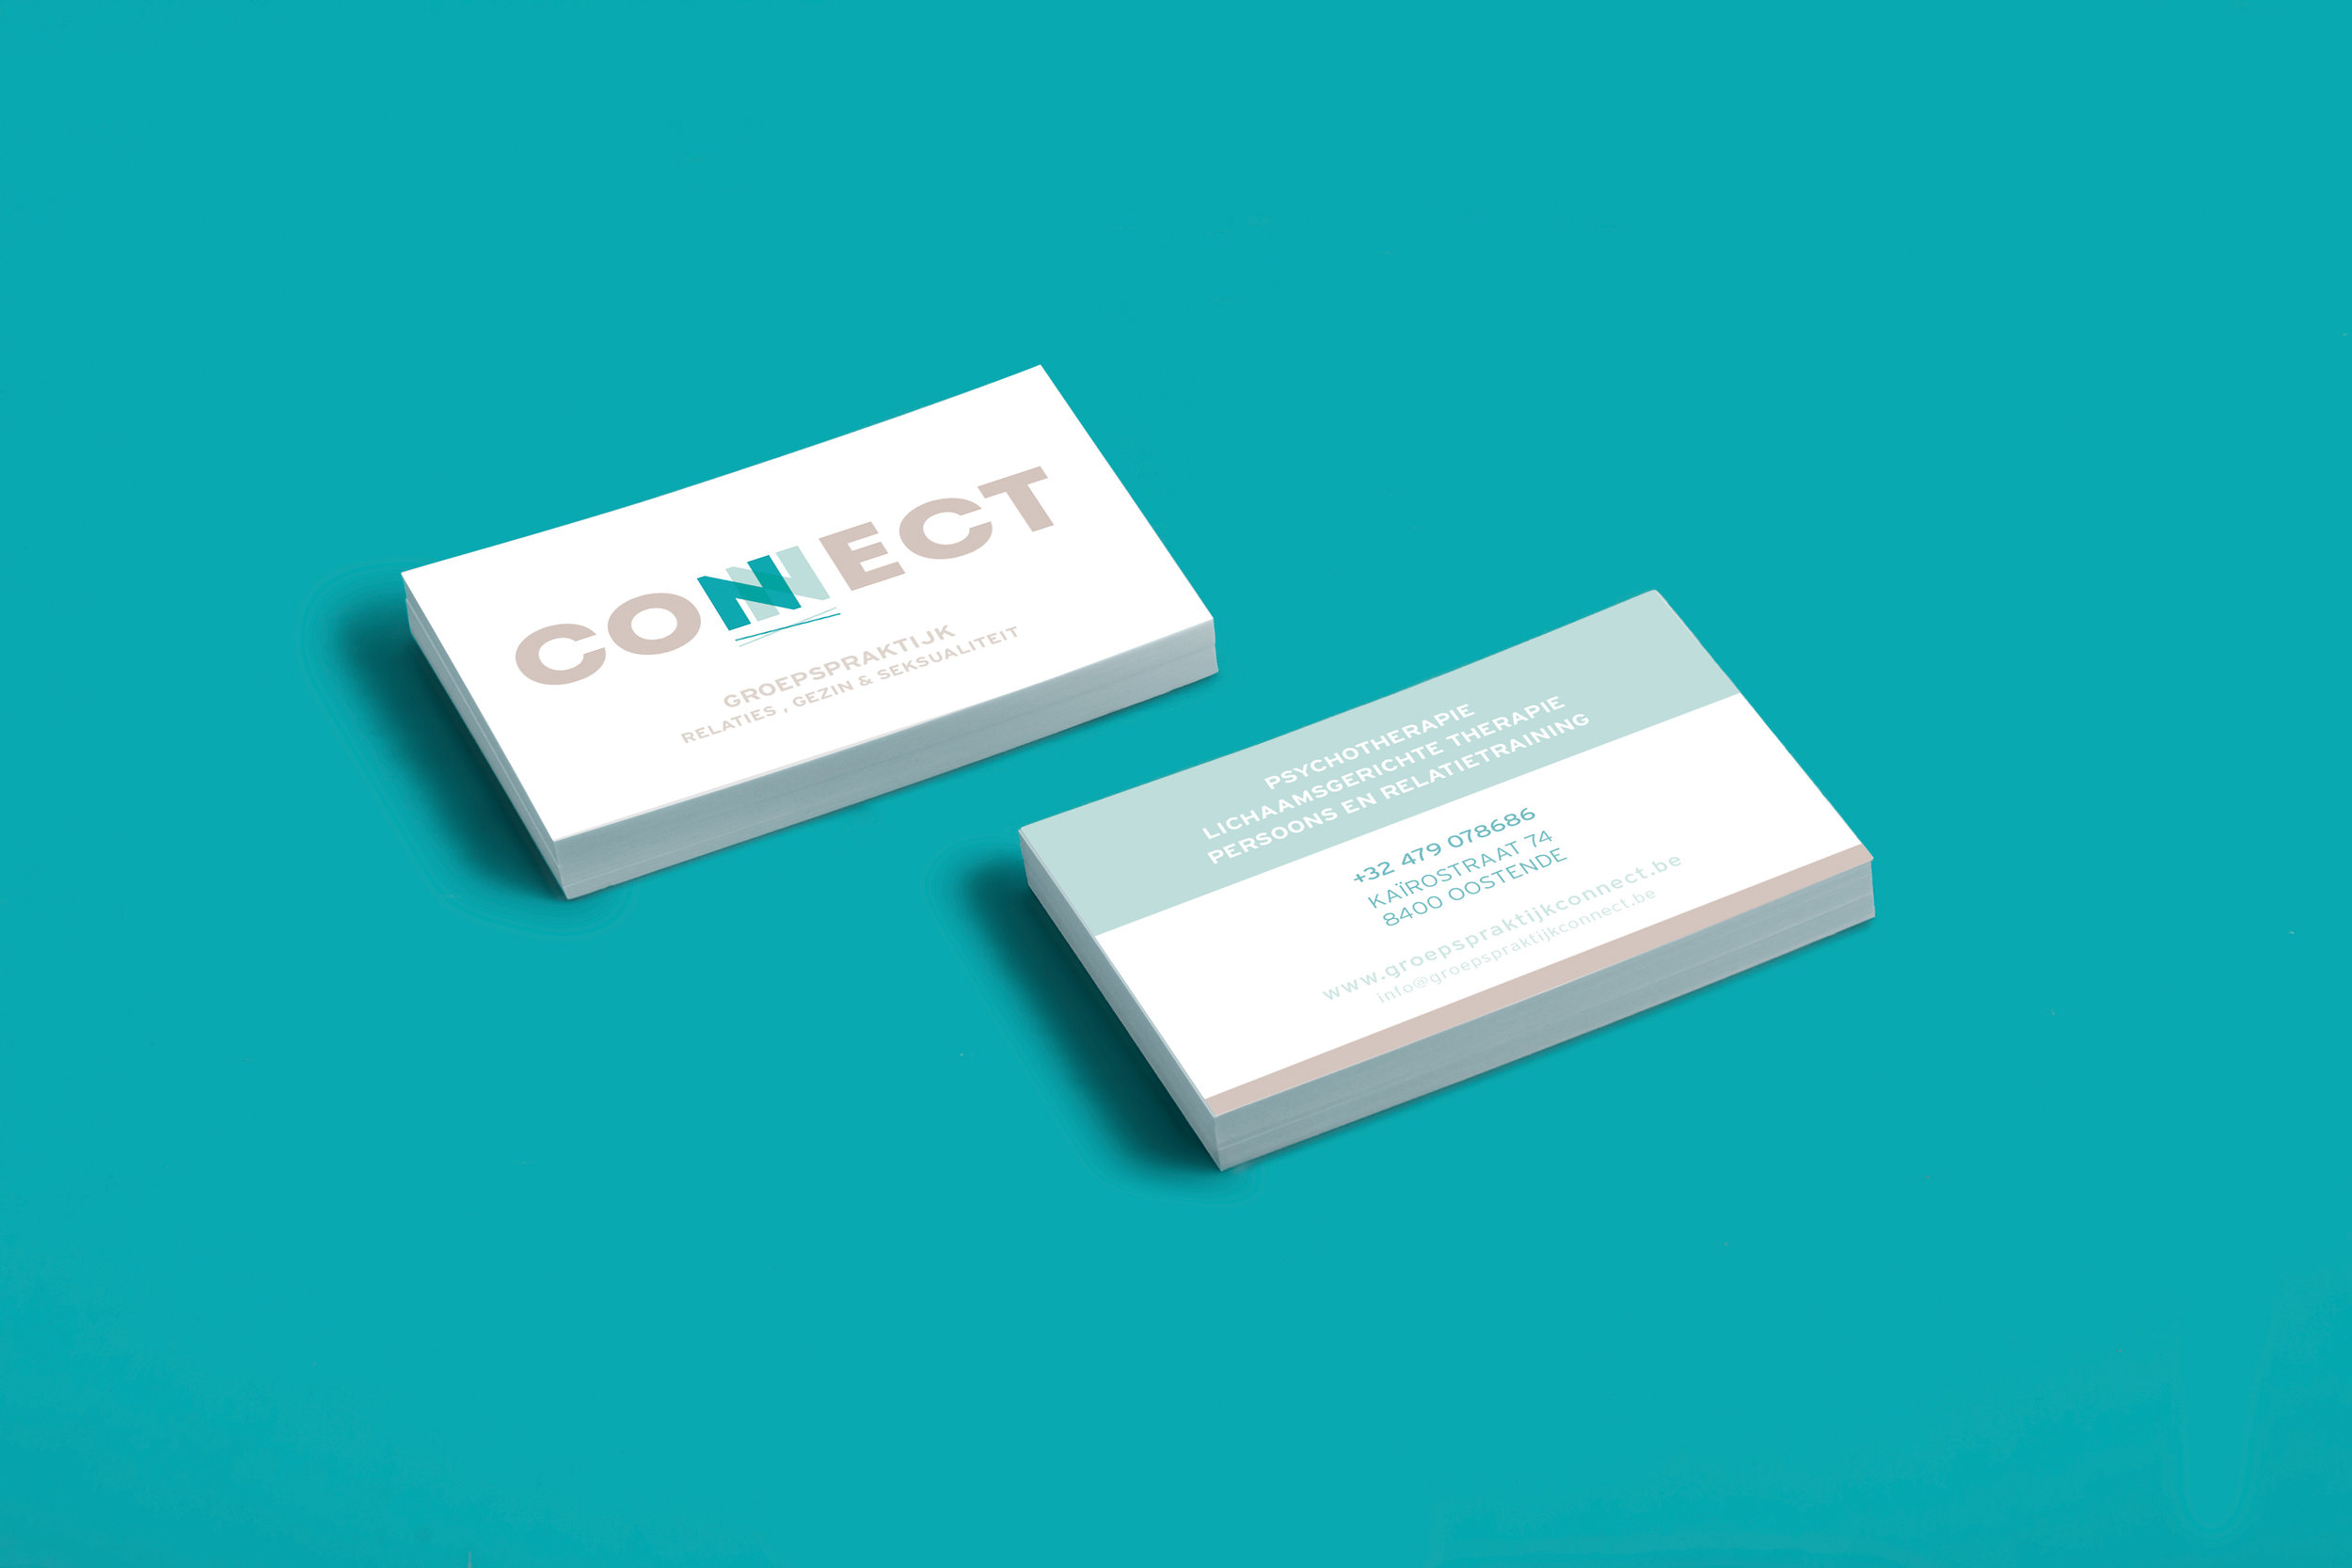 mockup_businesscard_connect.jpg